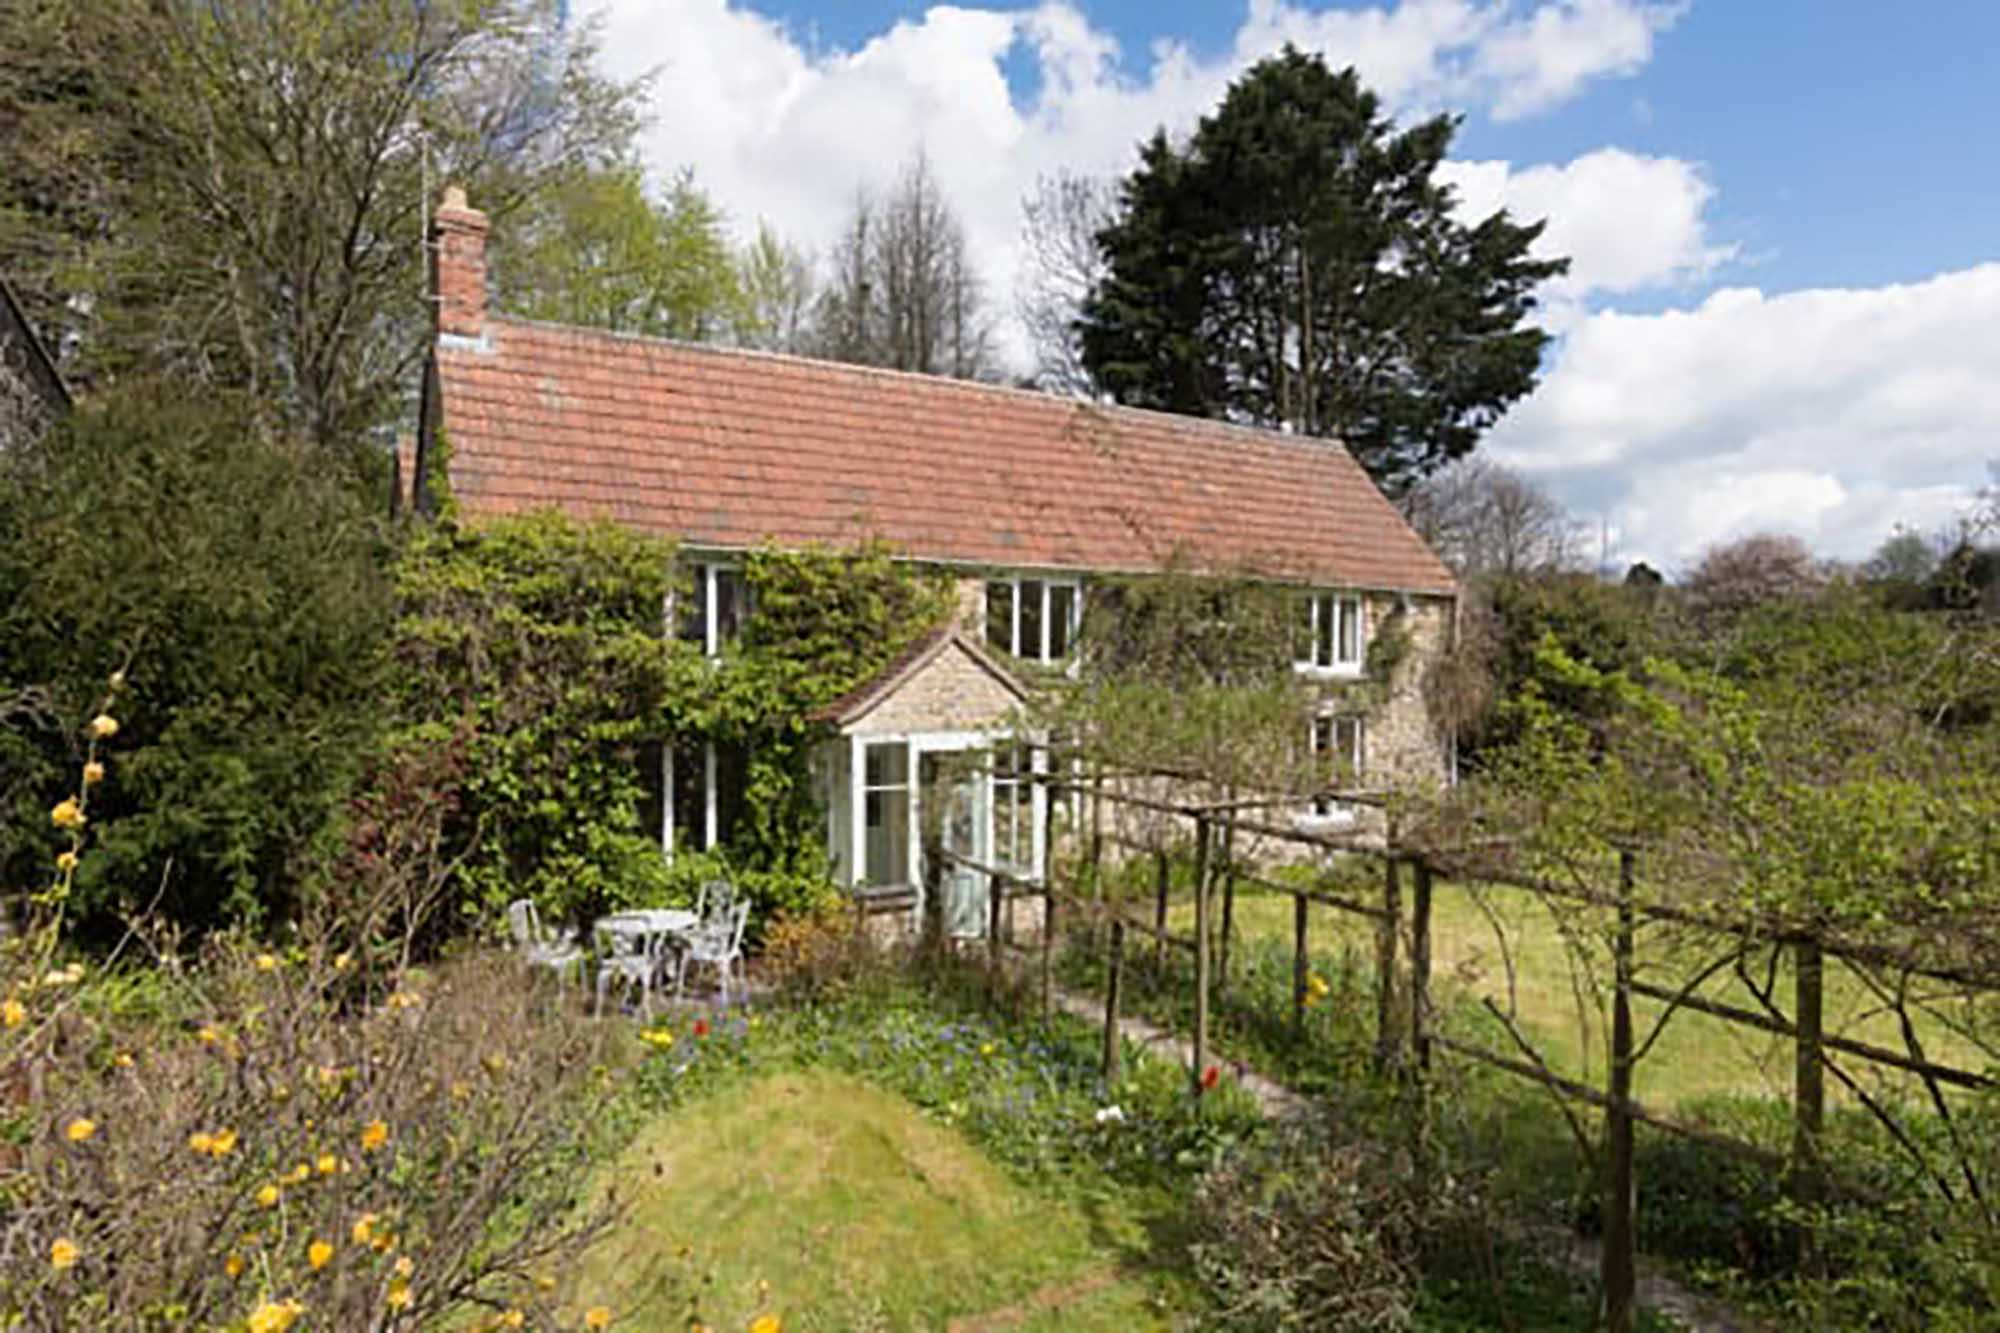 A hidden gem in the very pretty village of Batcombe, Shepton Mallet